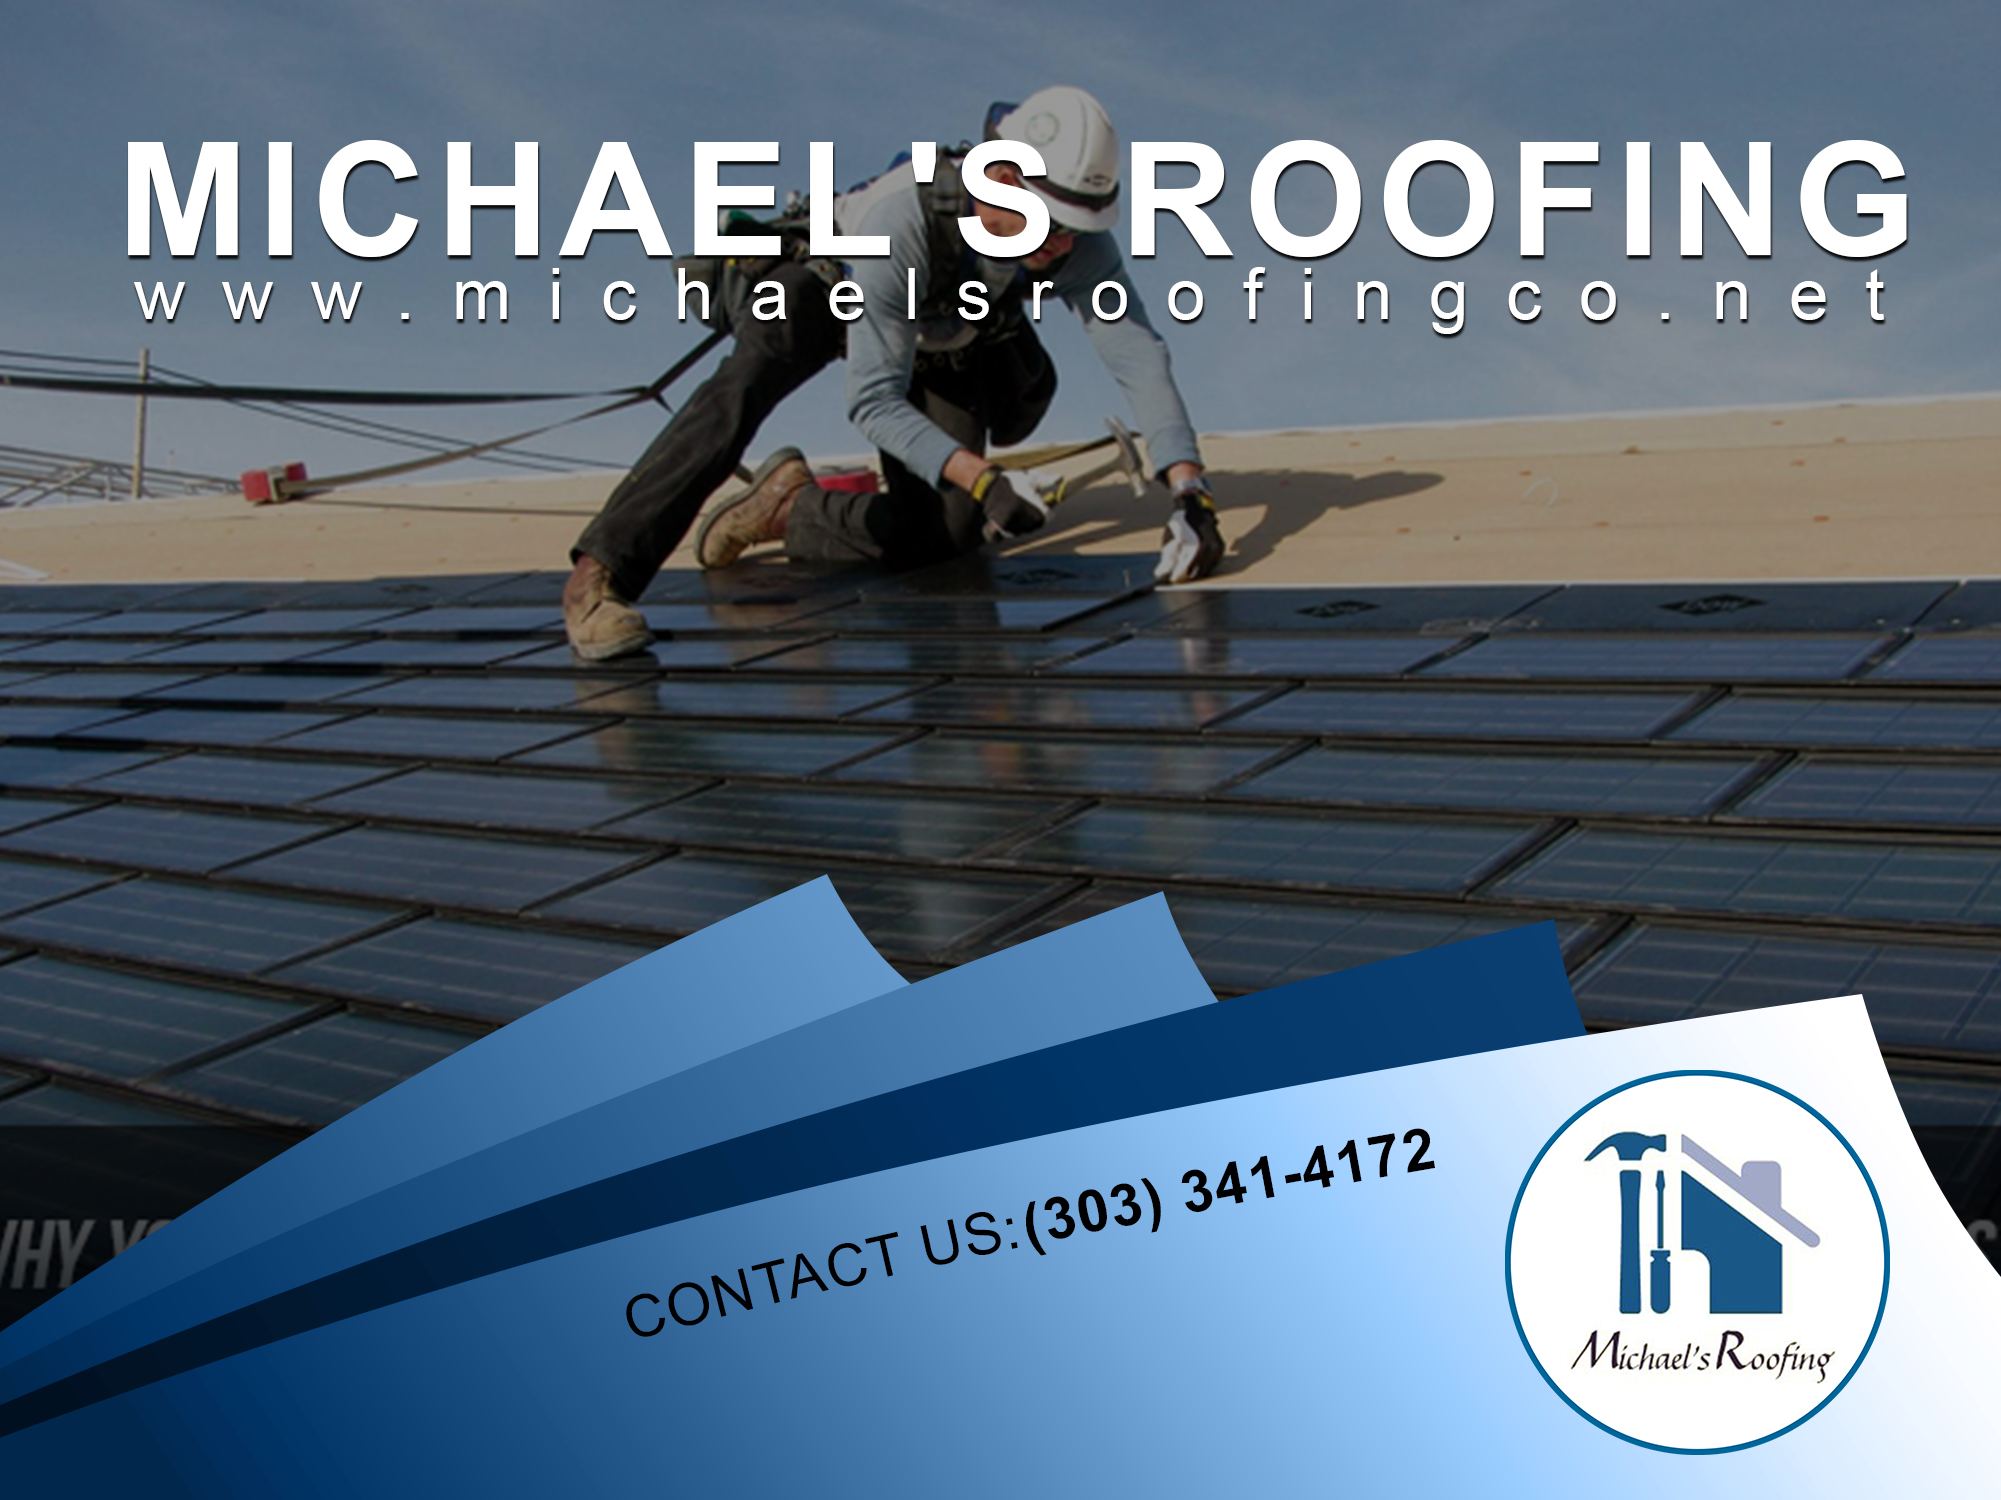 Roofing Company In 2020 Roofing Roof Repair Roofing Services